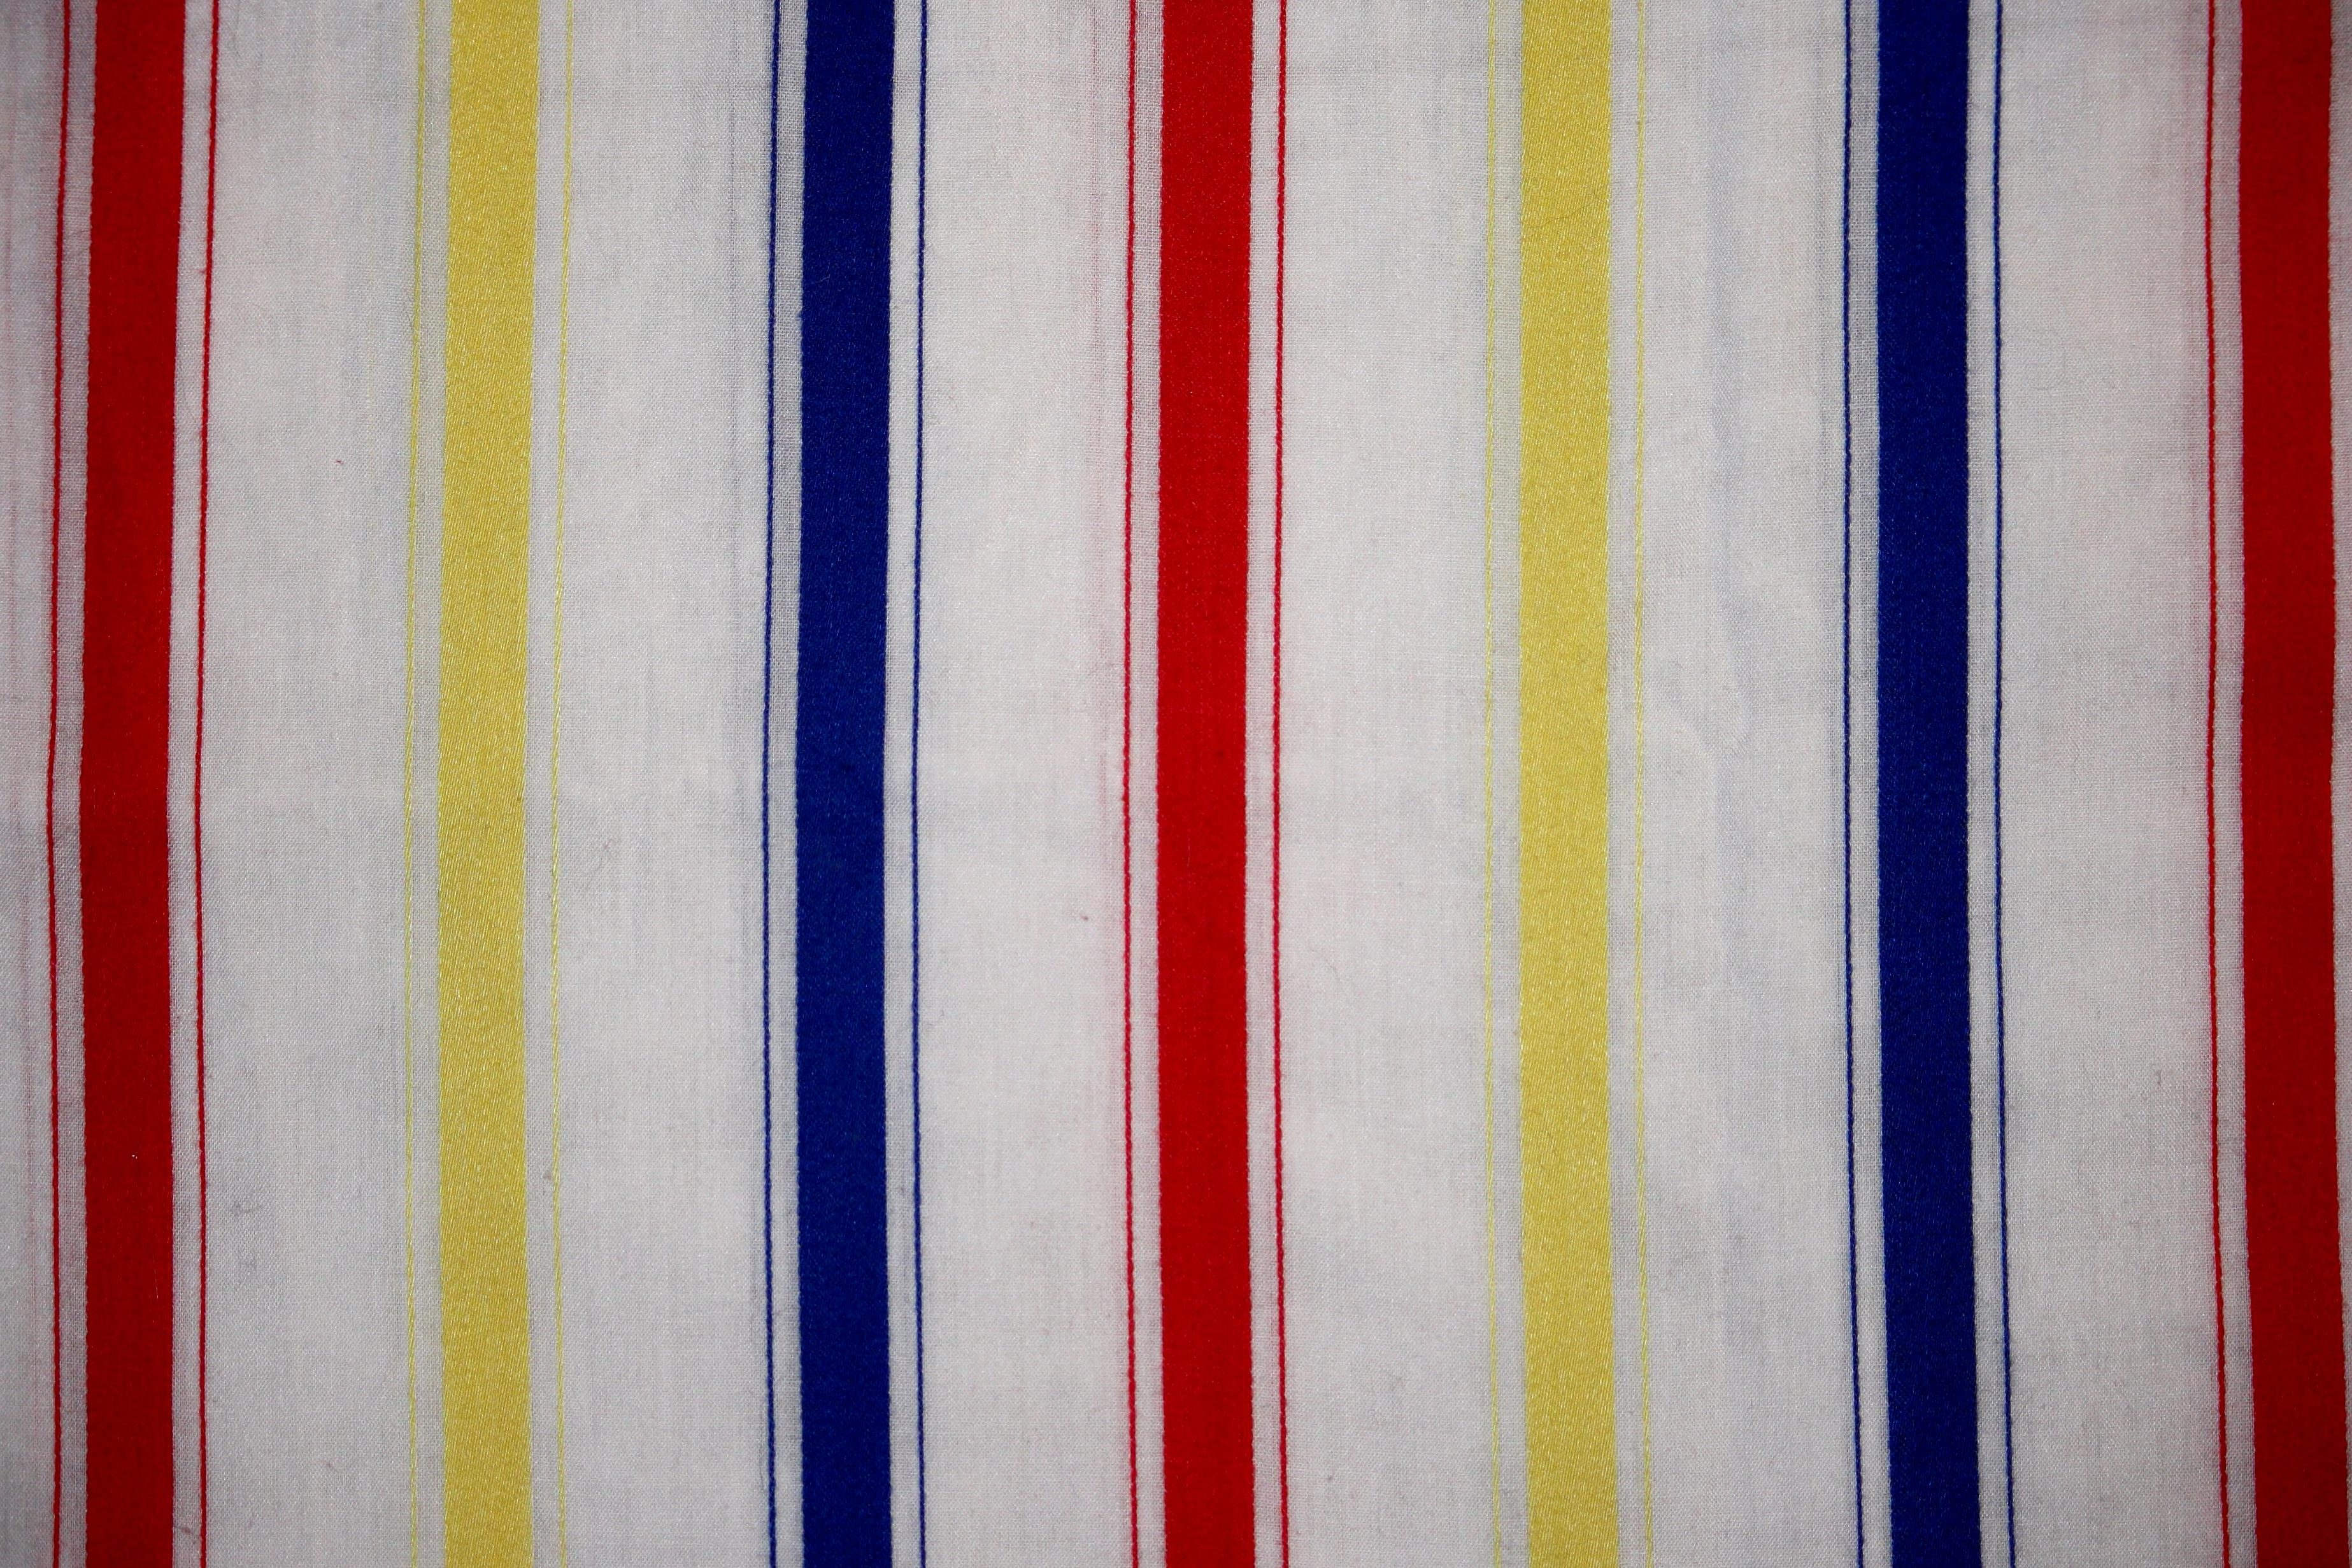 Free picture: textil, dishcloth, fabric, texture, red, blue, yellow ...